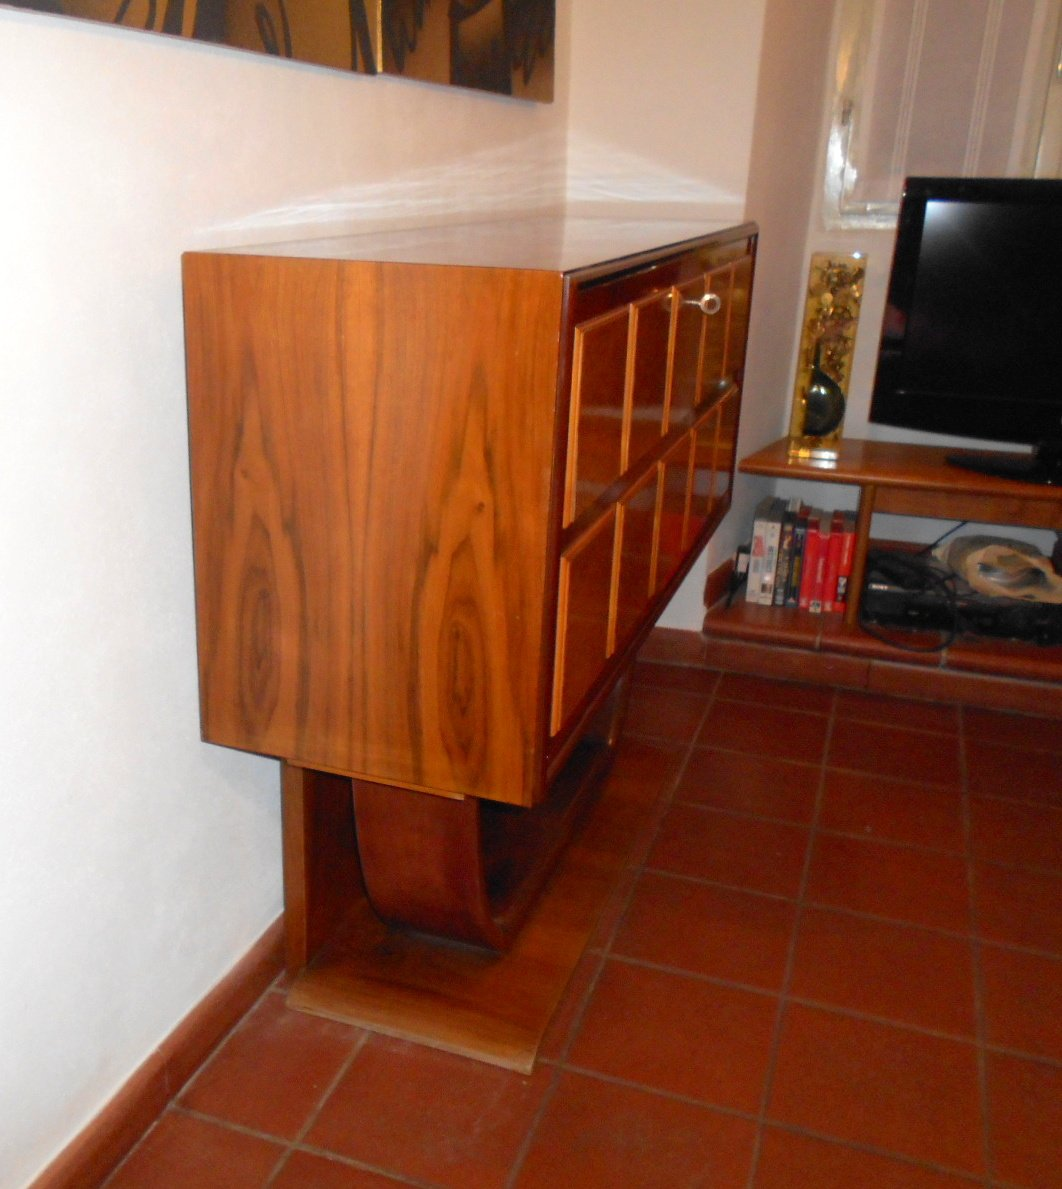 Bar cabinet by osvaldo borsani 1940s for sale at pamono for 1940s kitchen cabinets for sale